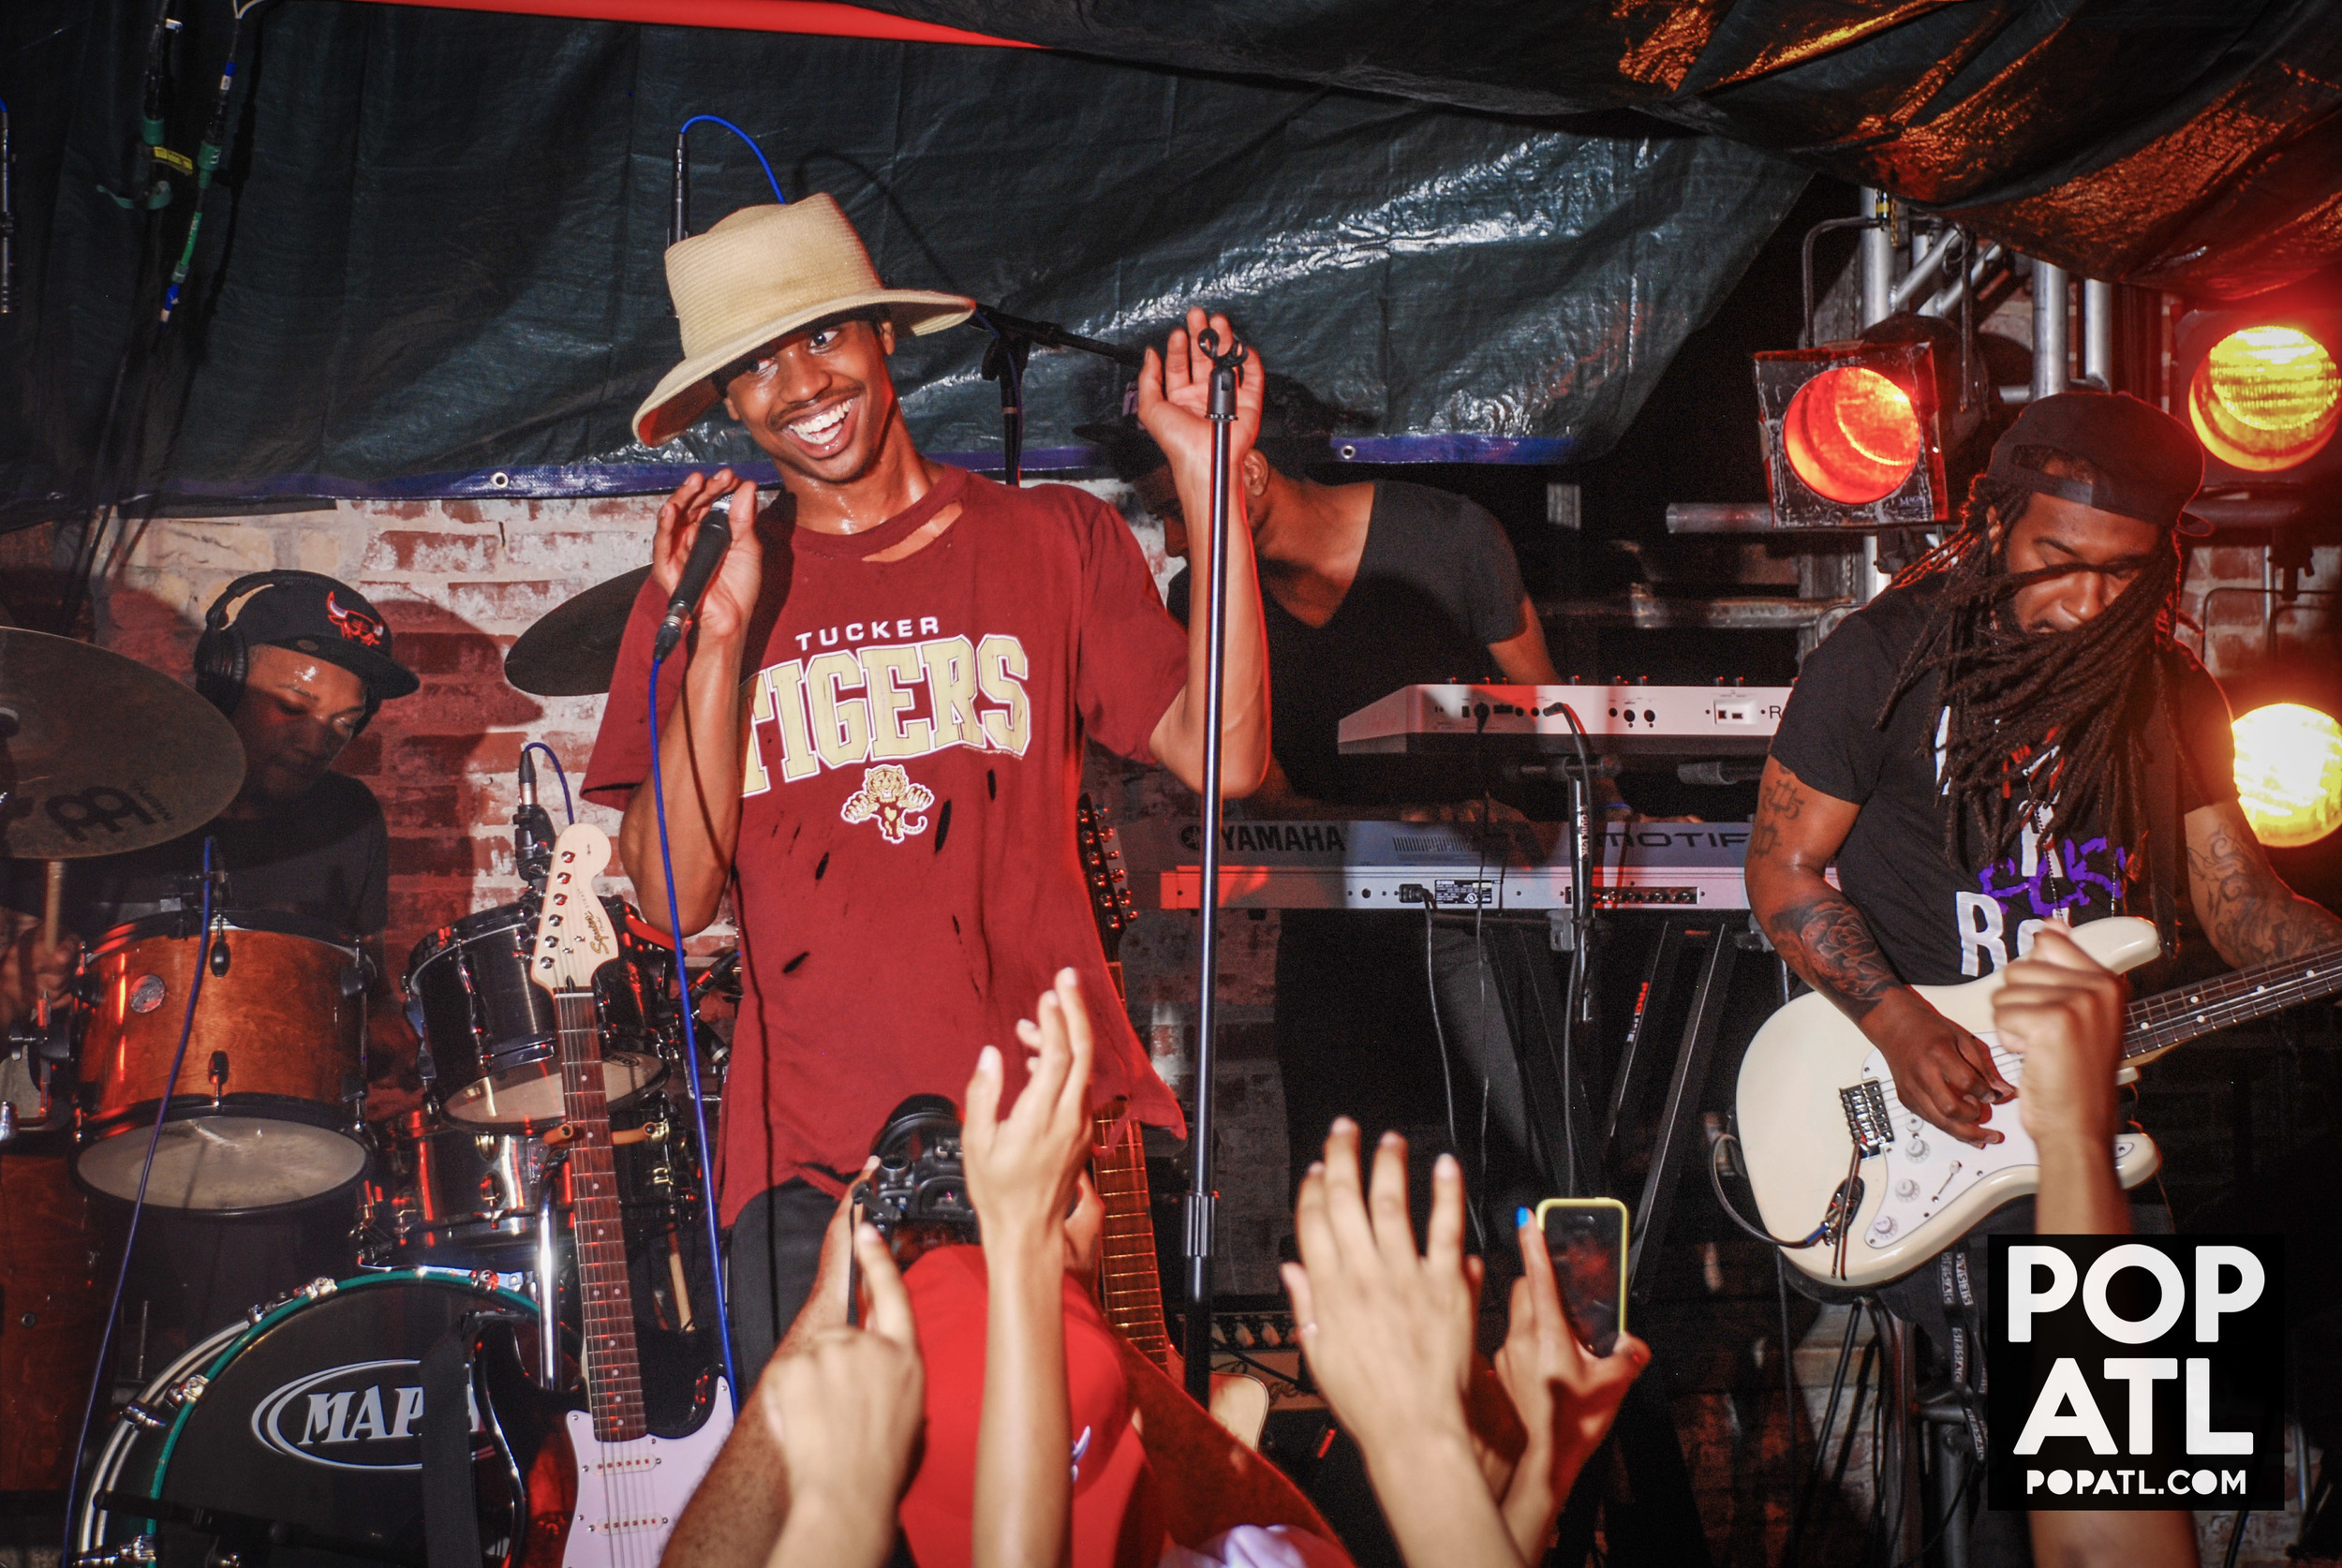 RAURY-RAURFEST-AT-POP-ATL-142.jpg